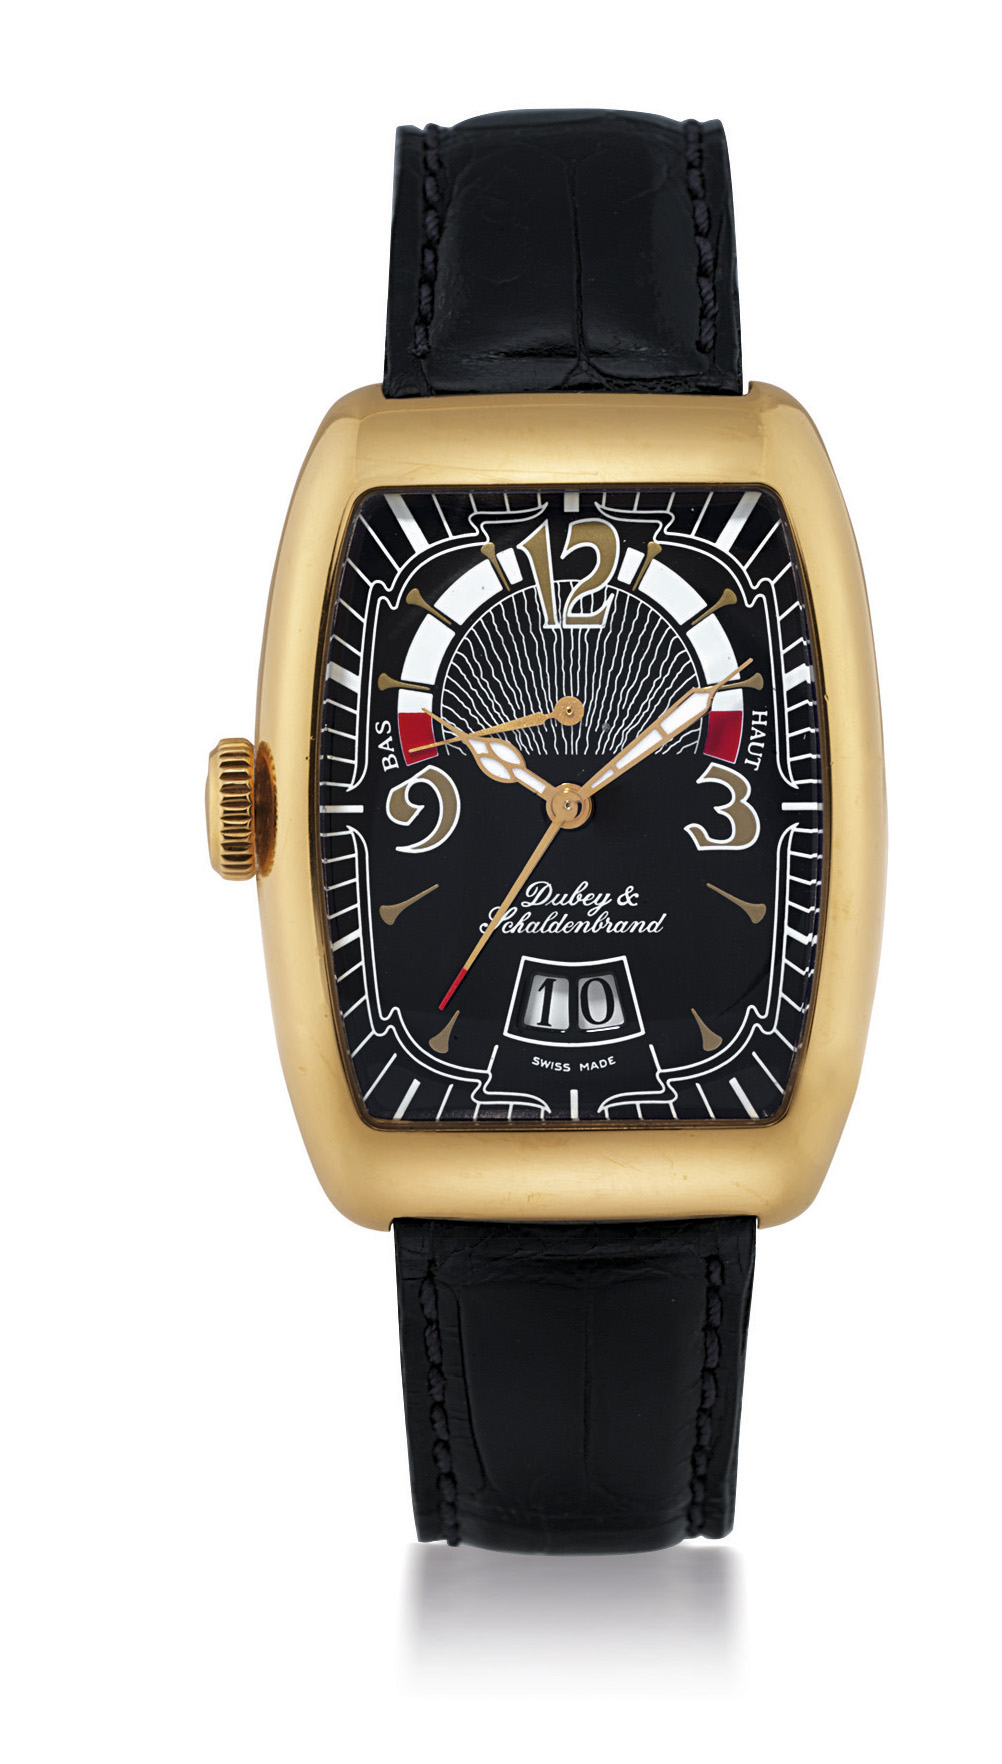 DUBEY & SCHALDENBRAND, VINTAGE CAPRICE  YELLOW GOLD AUTOMATIC LEFT-HANDED AUTOMATIC WRISTWATCH WITH DATE DISPLAY AND POWER RESERVE INDICATION, LIMITED EDITION OF 200